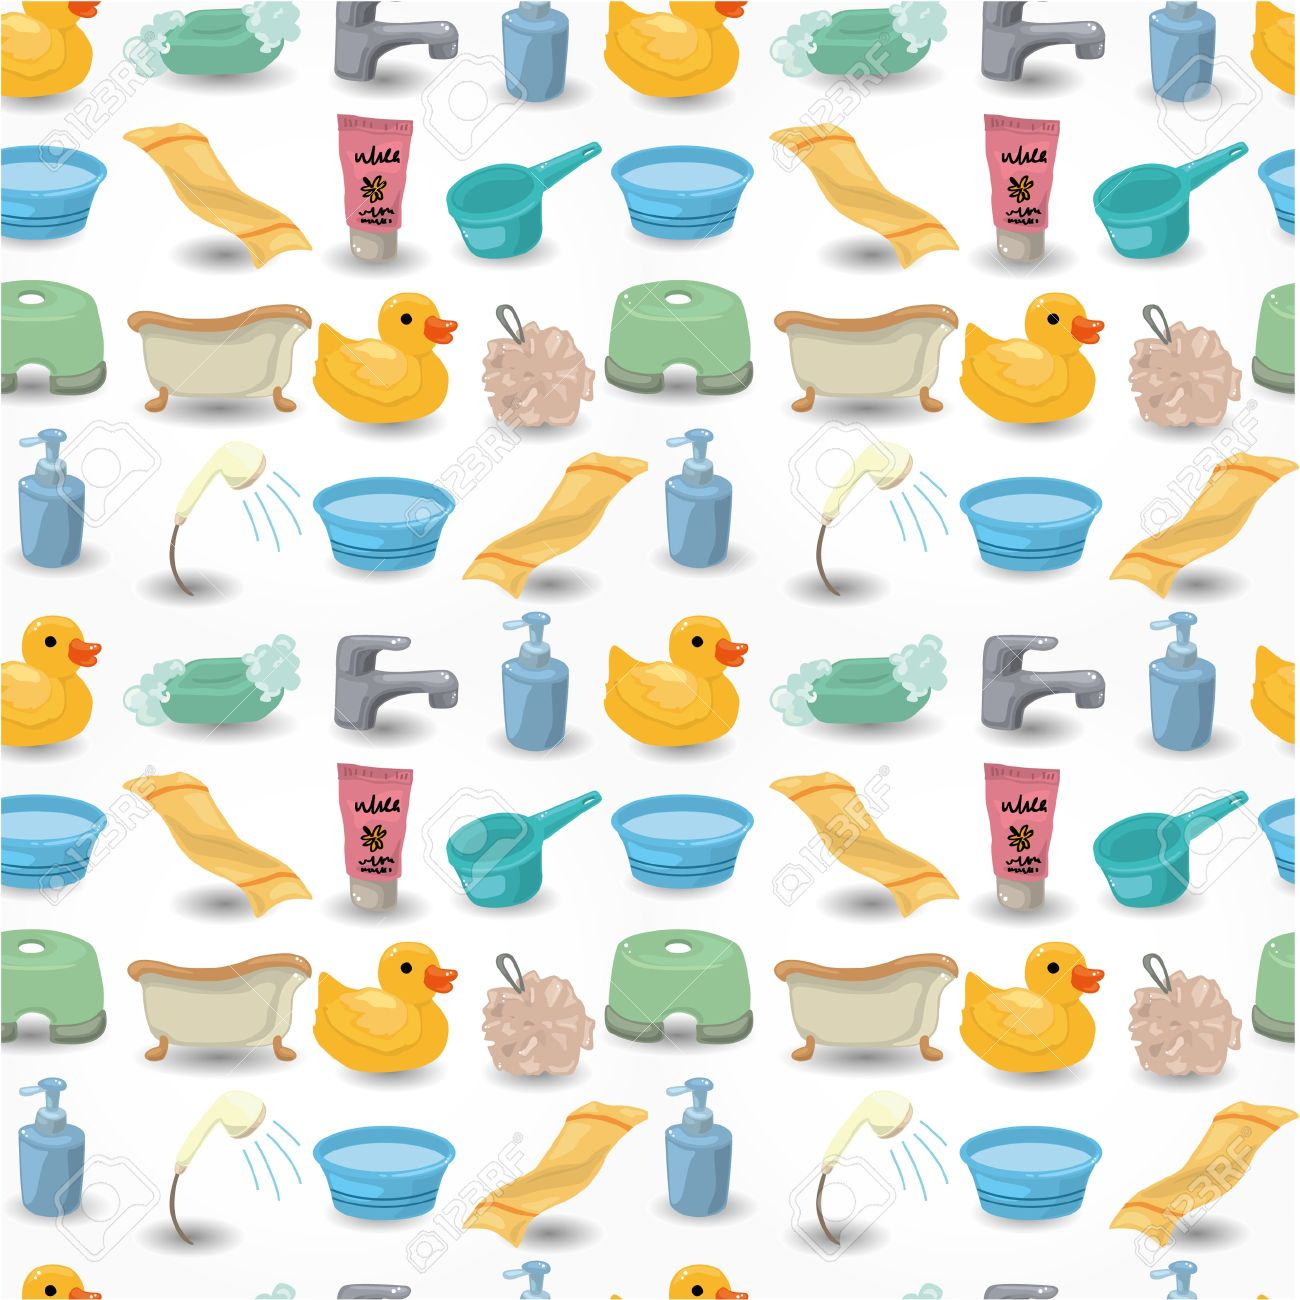 Cartoon Bathroom Equipment Seamless Pattern Royalty Free Cliparts